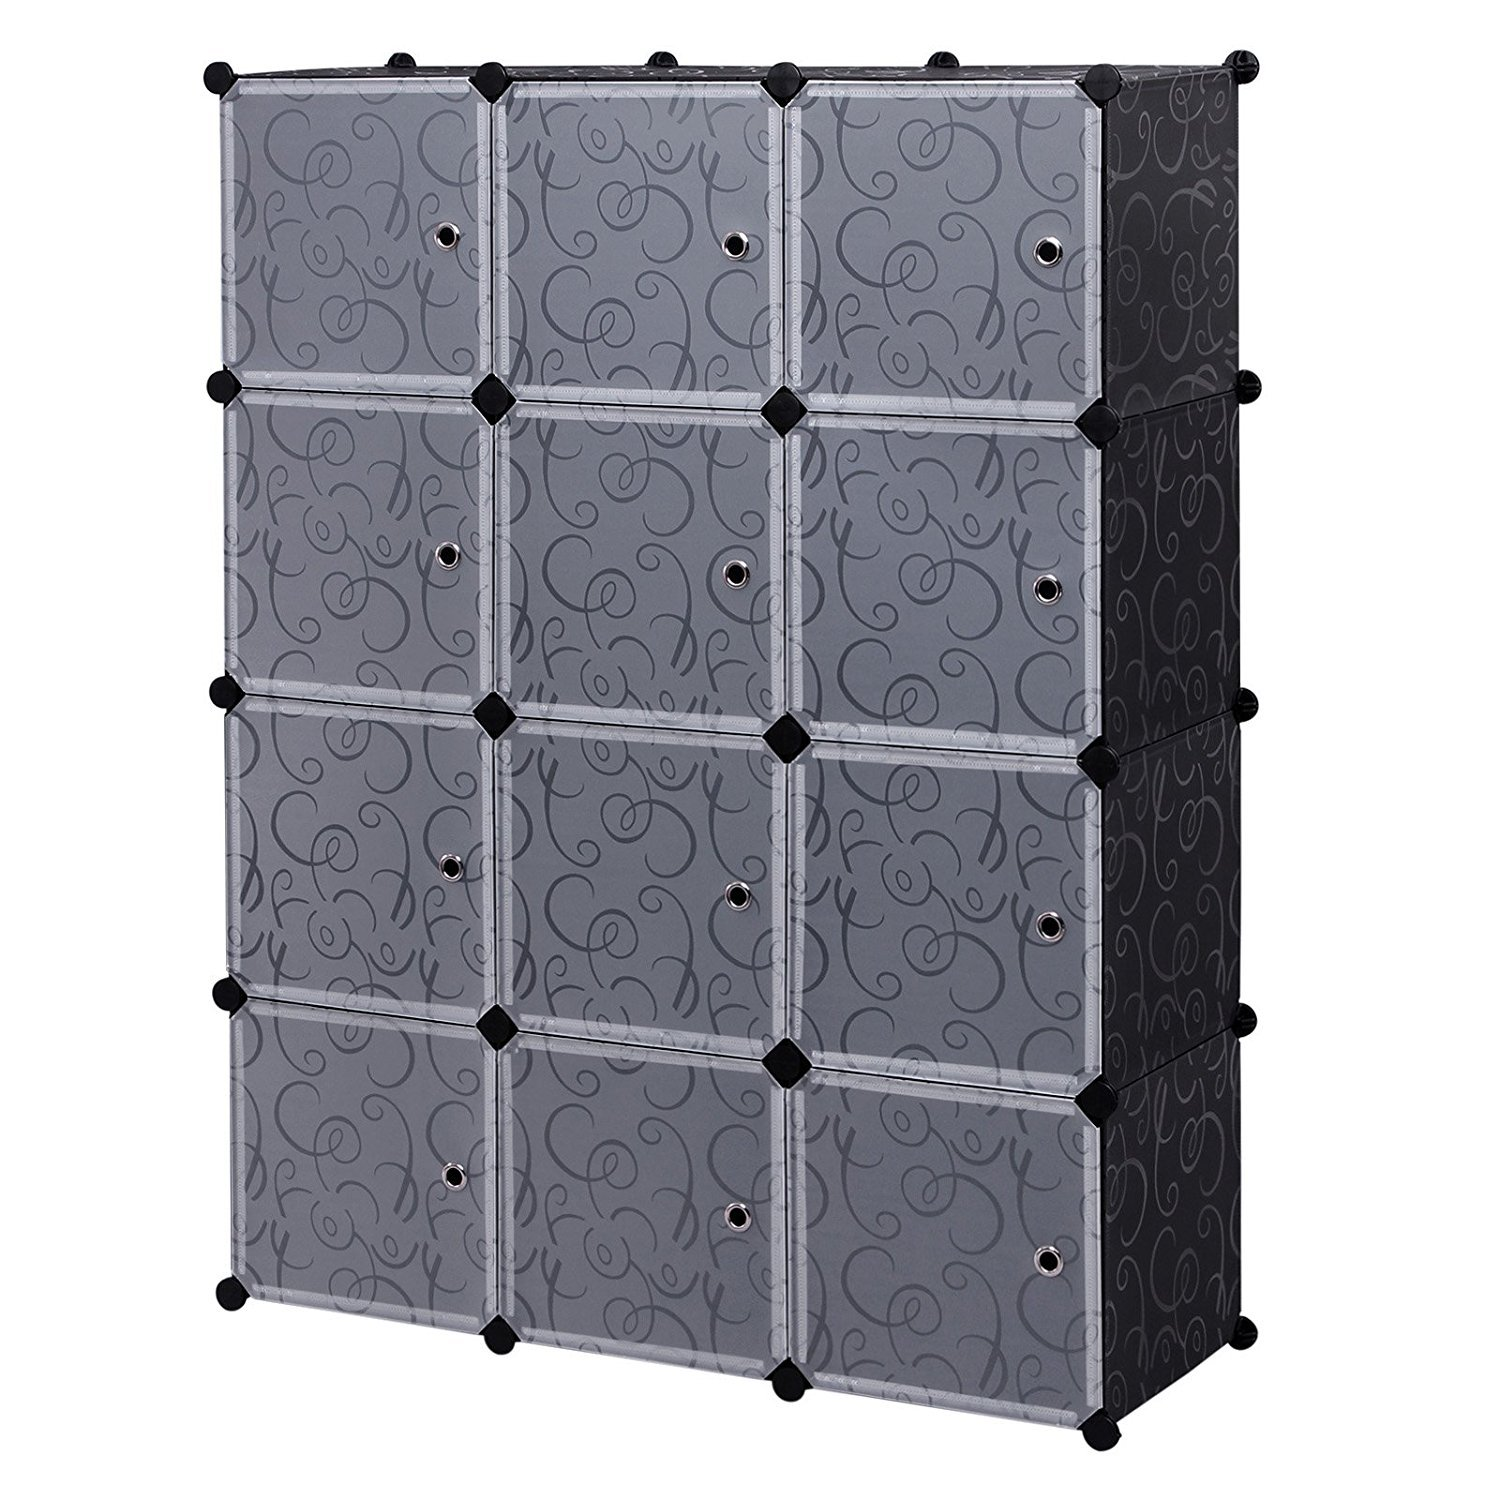 12 Cube Home Storage Cabinet Garage Storage Racks Sets, Shelf Cabinet, Panels and Units for Books, Plants, Toys, Shoes, Clothes, for Bedroom & Living Room (Black)